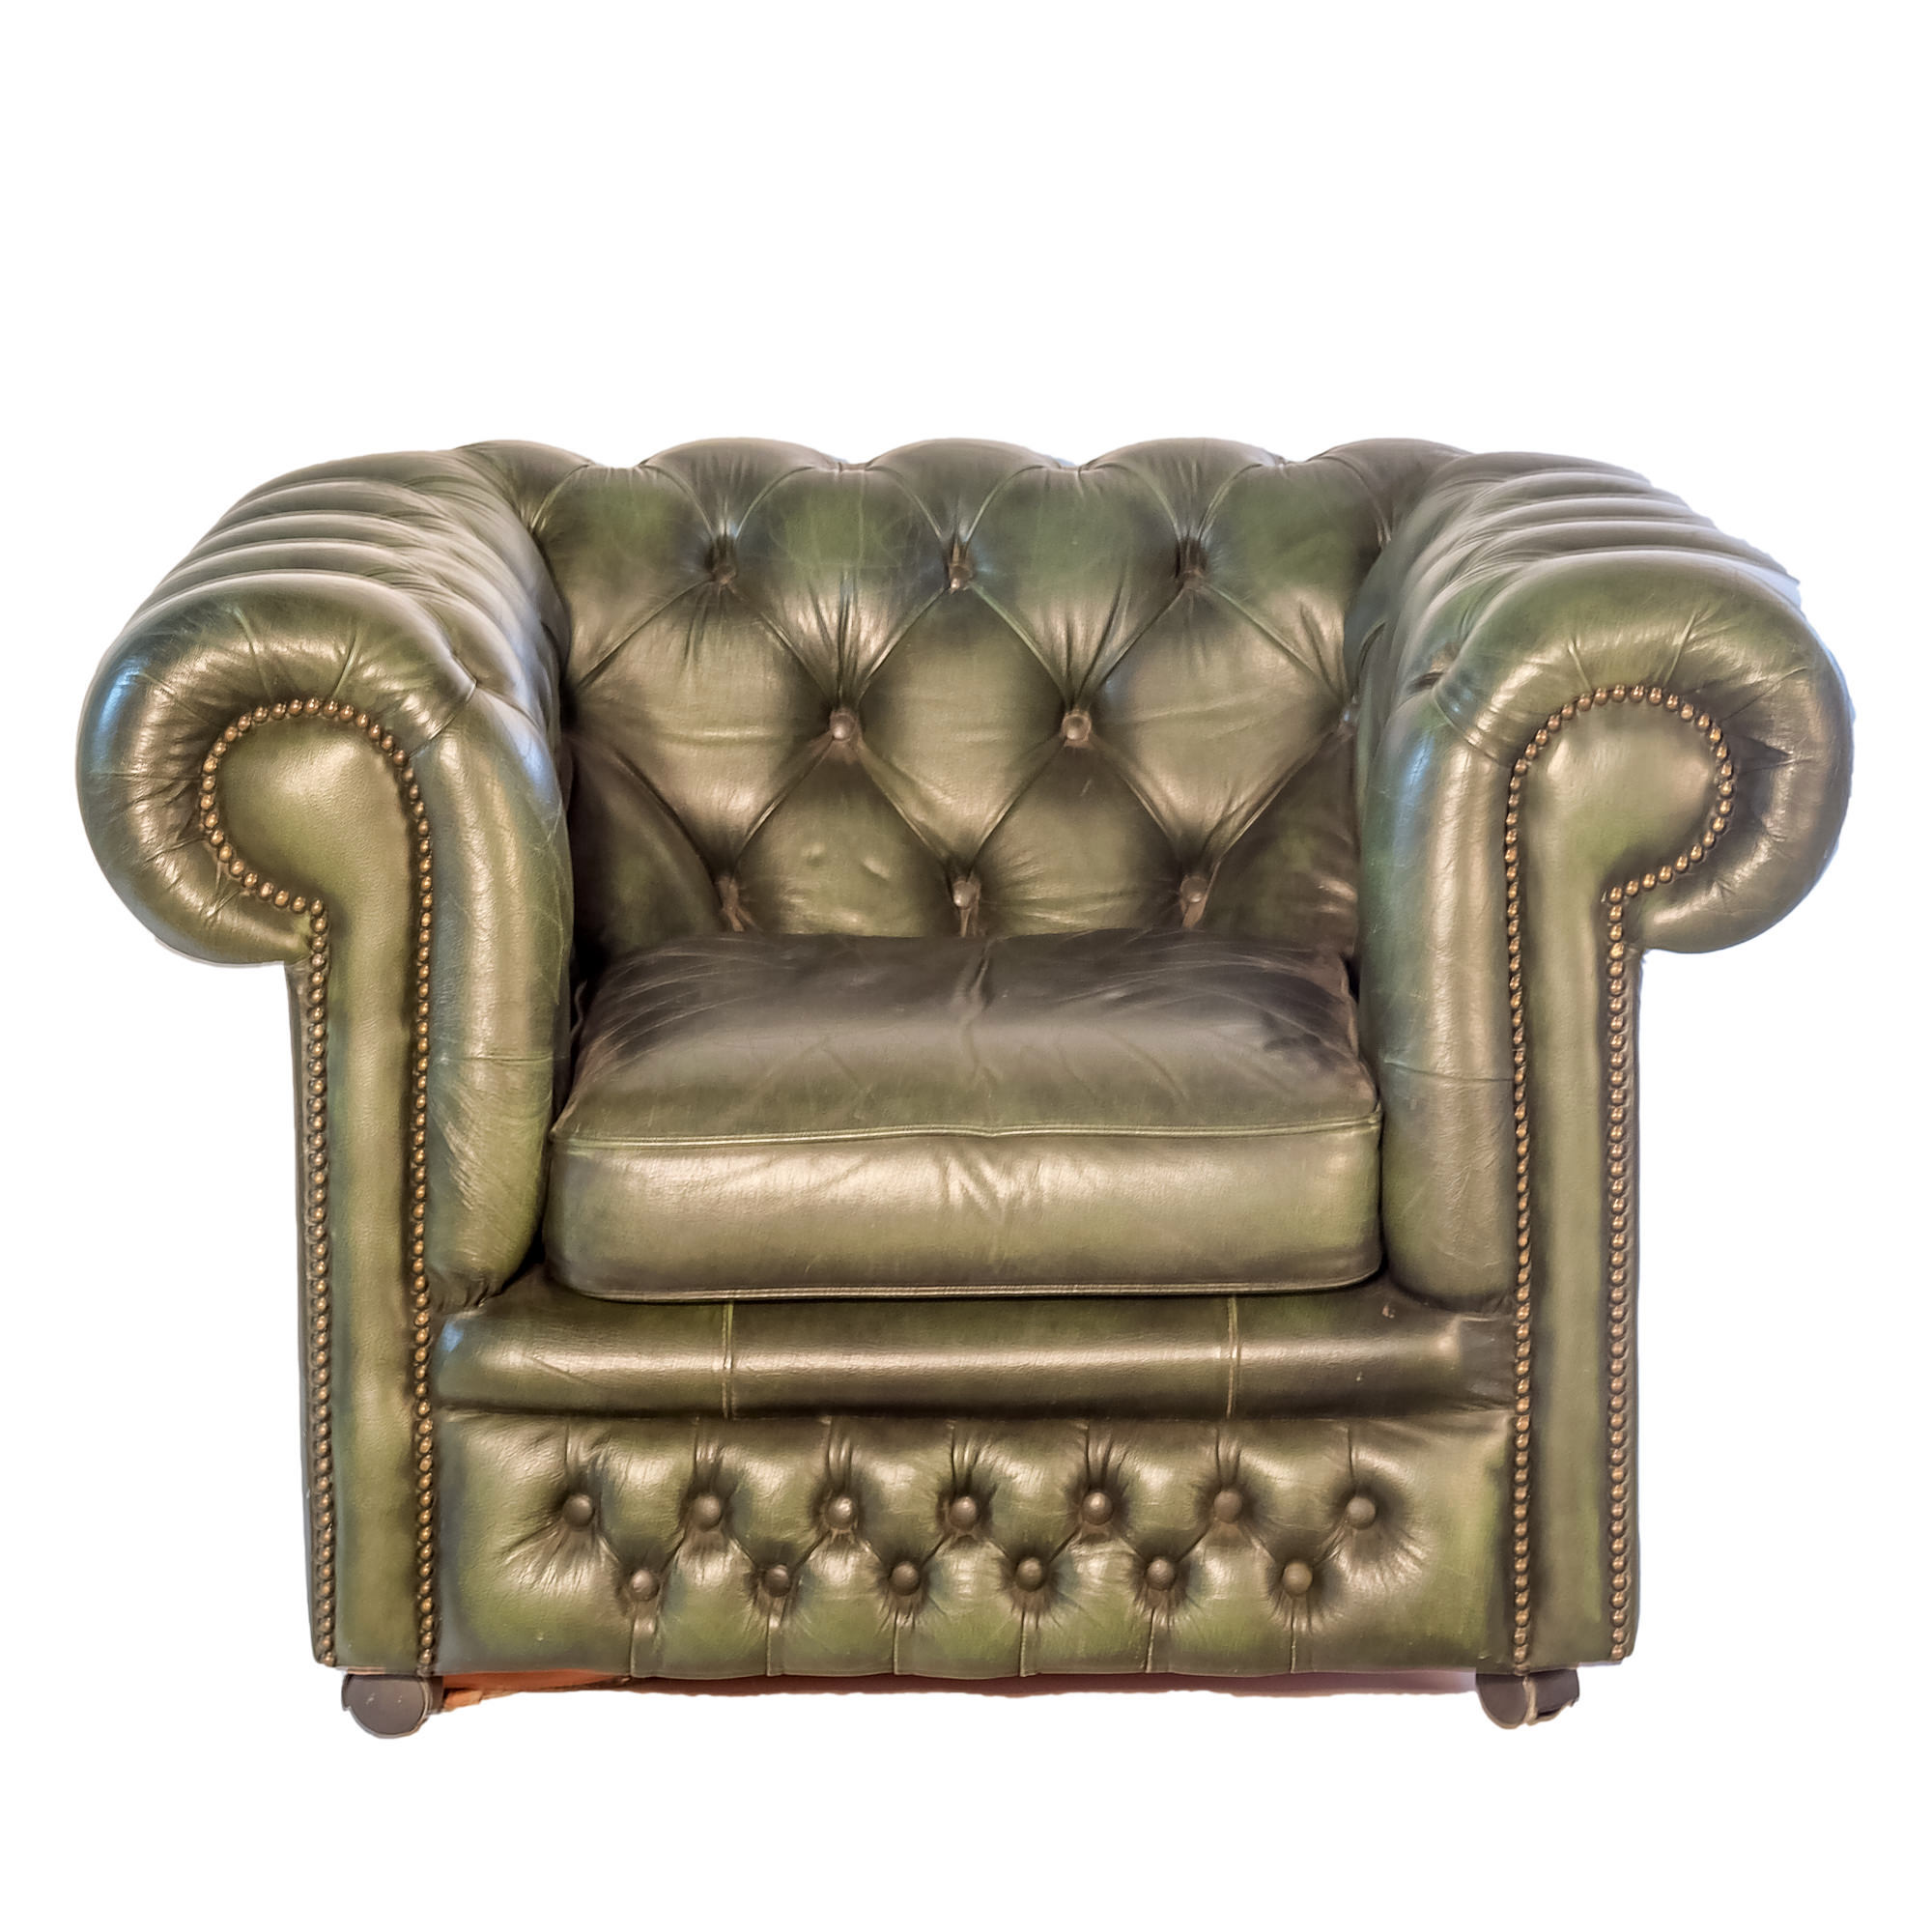 'Gascoigne Green Leather Chesterfield Armchair Late 20th Century '